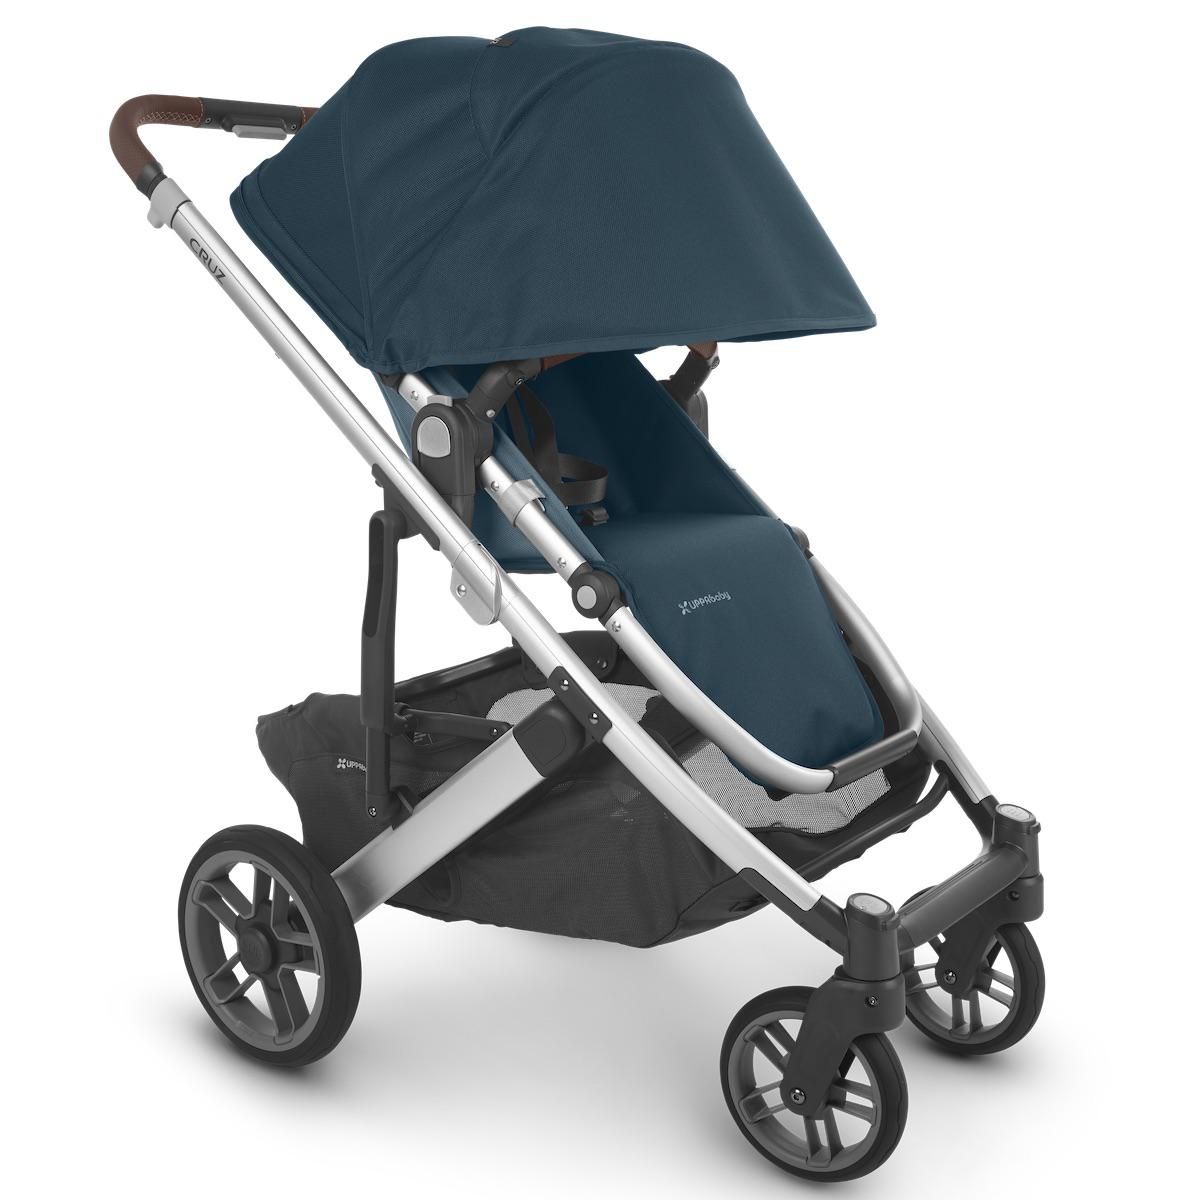 Poussette CRUZ V2 Uppababy Finn deep sea-silver-saddle leather